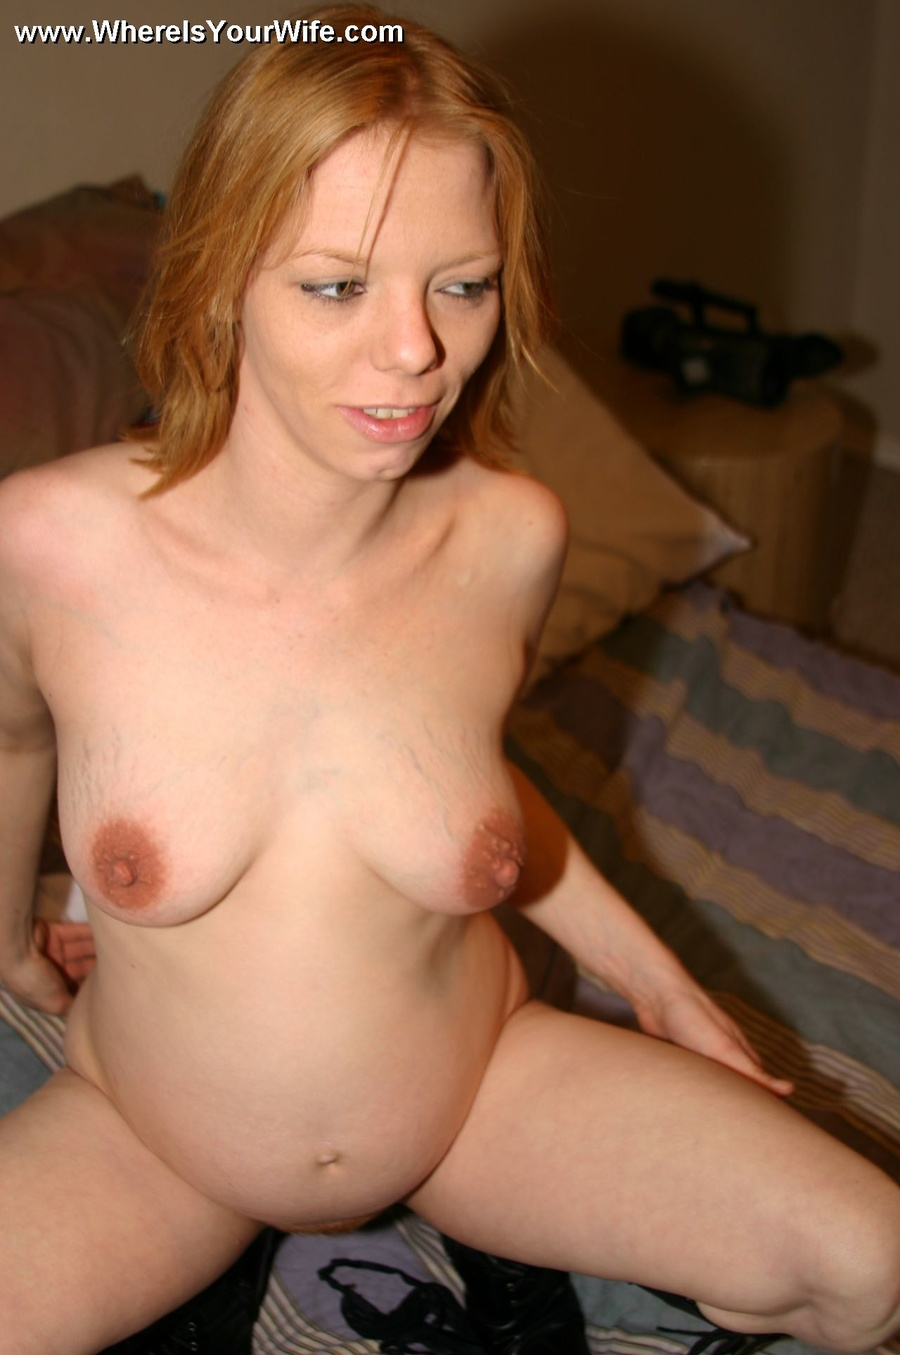 Small Floppy Saggy Empty Tits